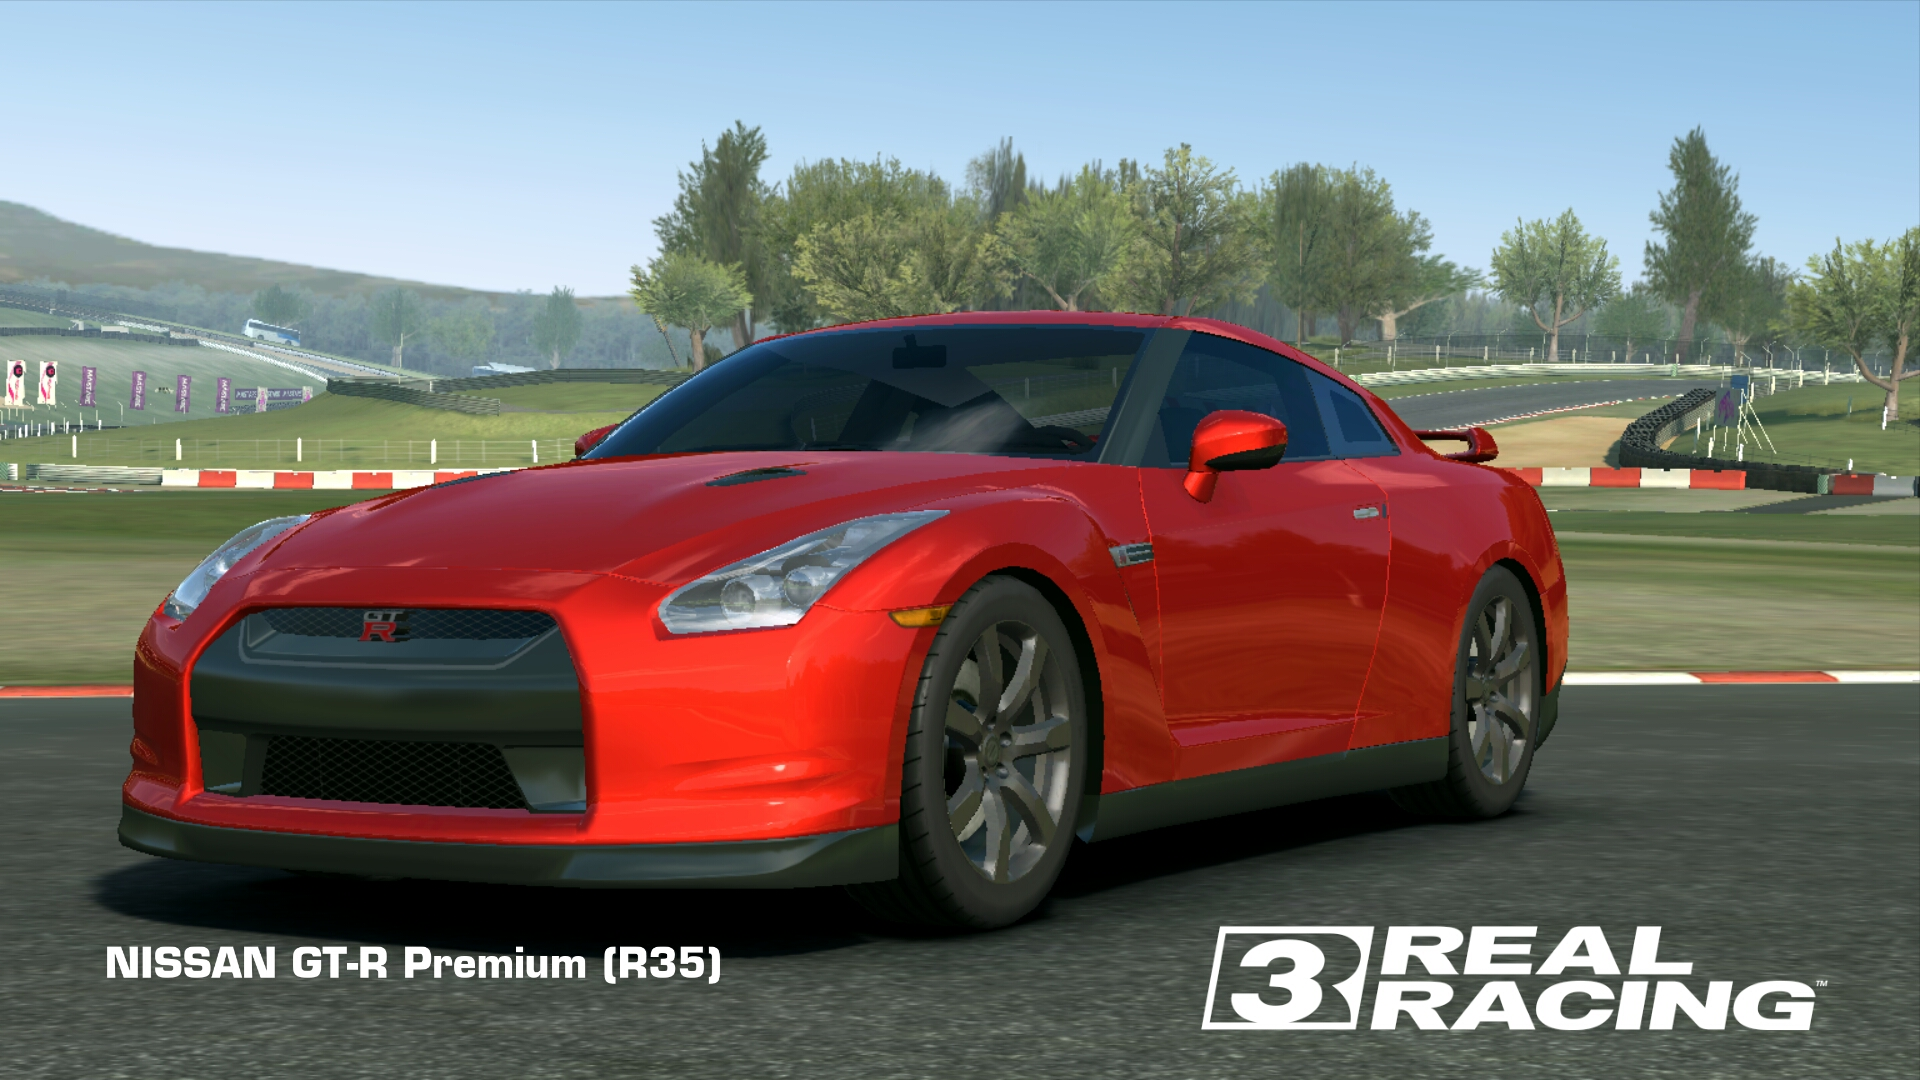 NISSAN GT-R Premium (R35) | Real Racing 3 Wiki | FANDOM powered by ...